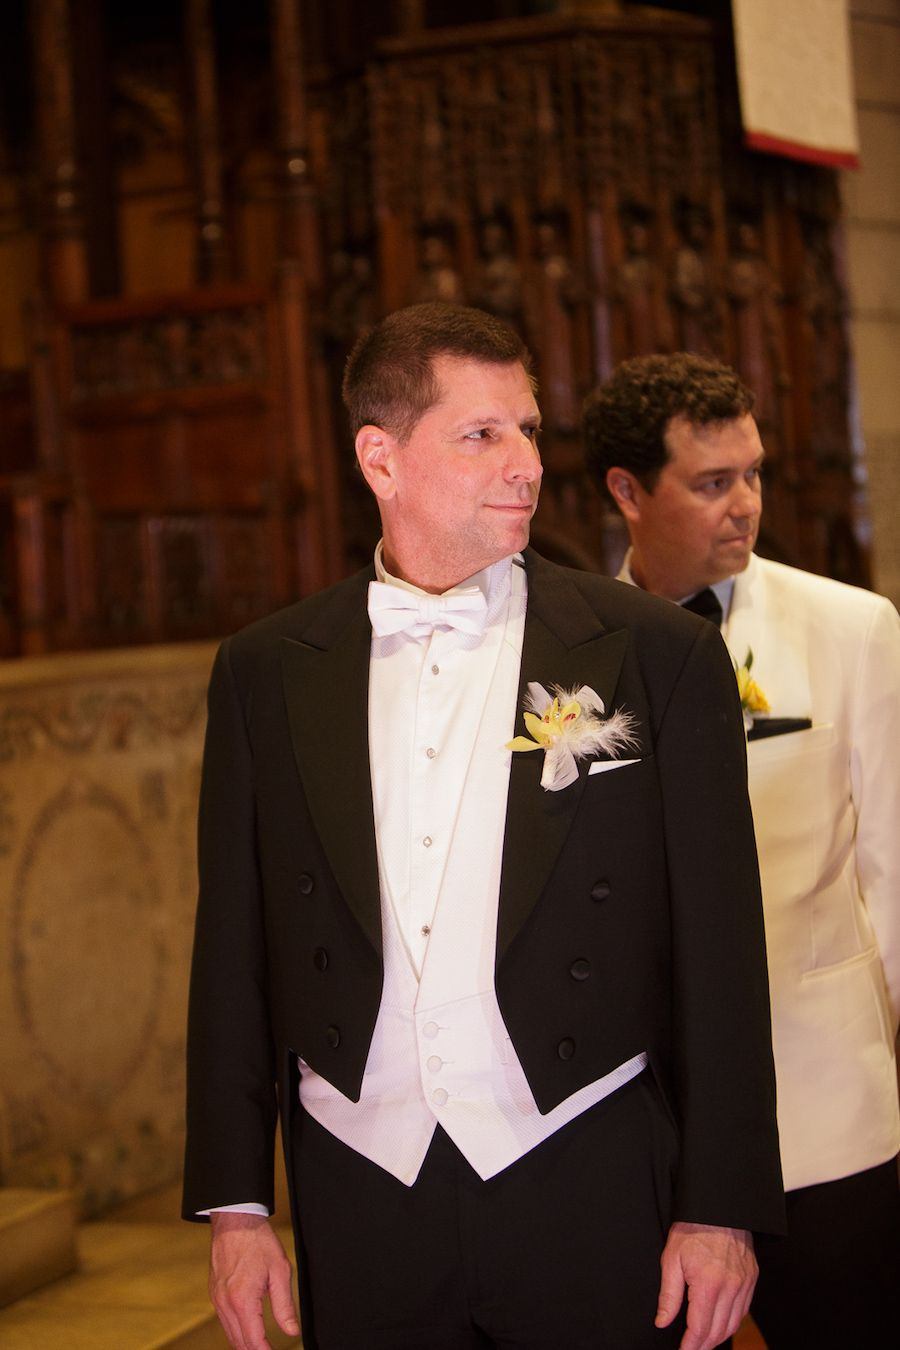 Alexandra and haroldus grand church wedding in manhattan bride